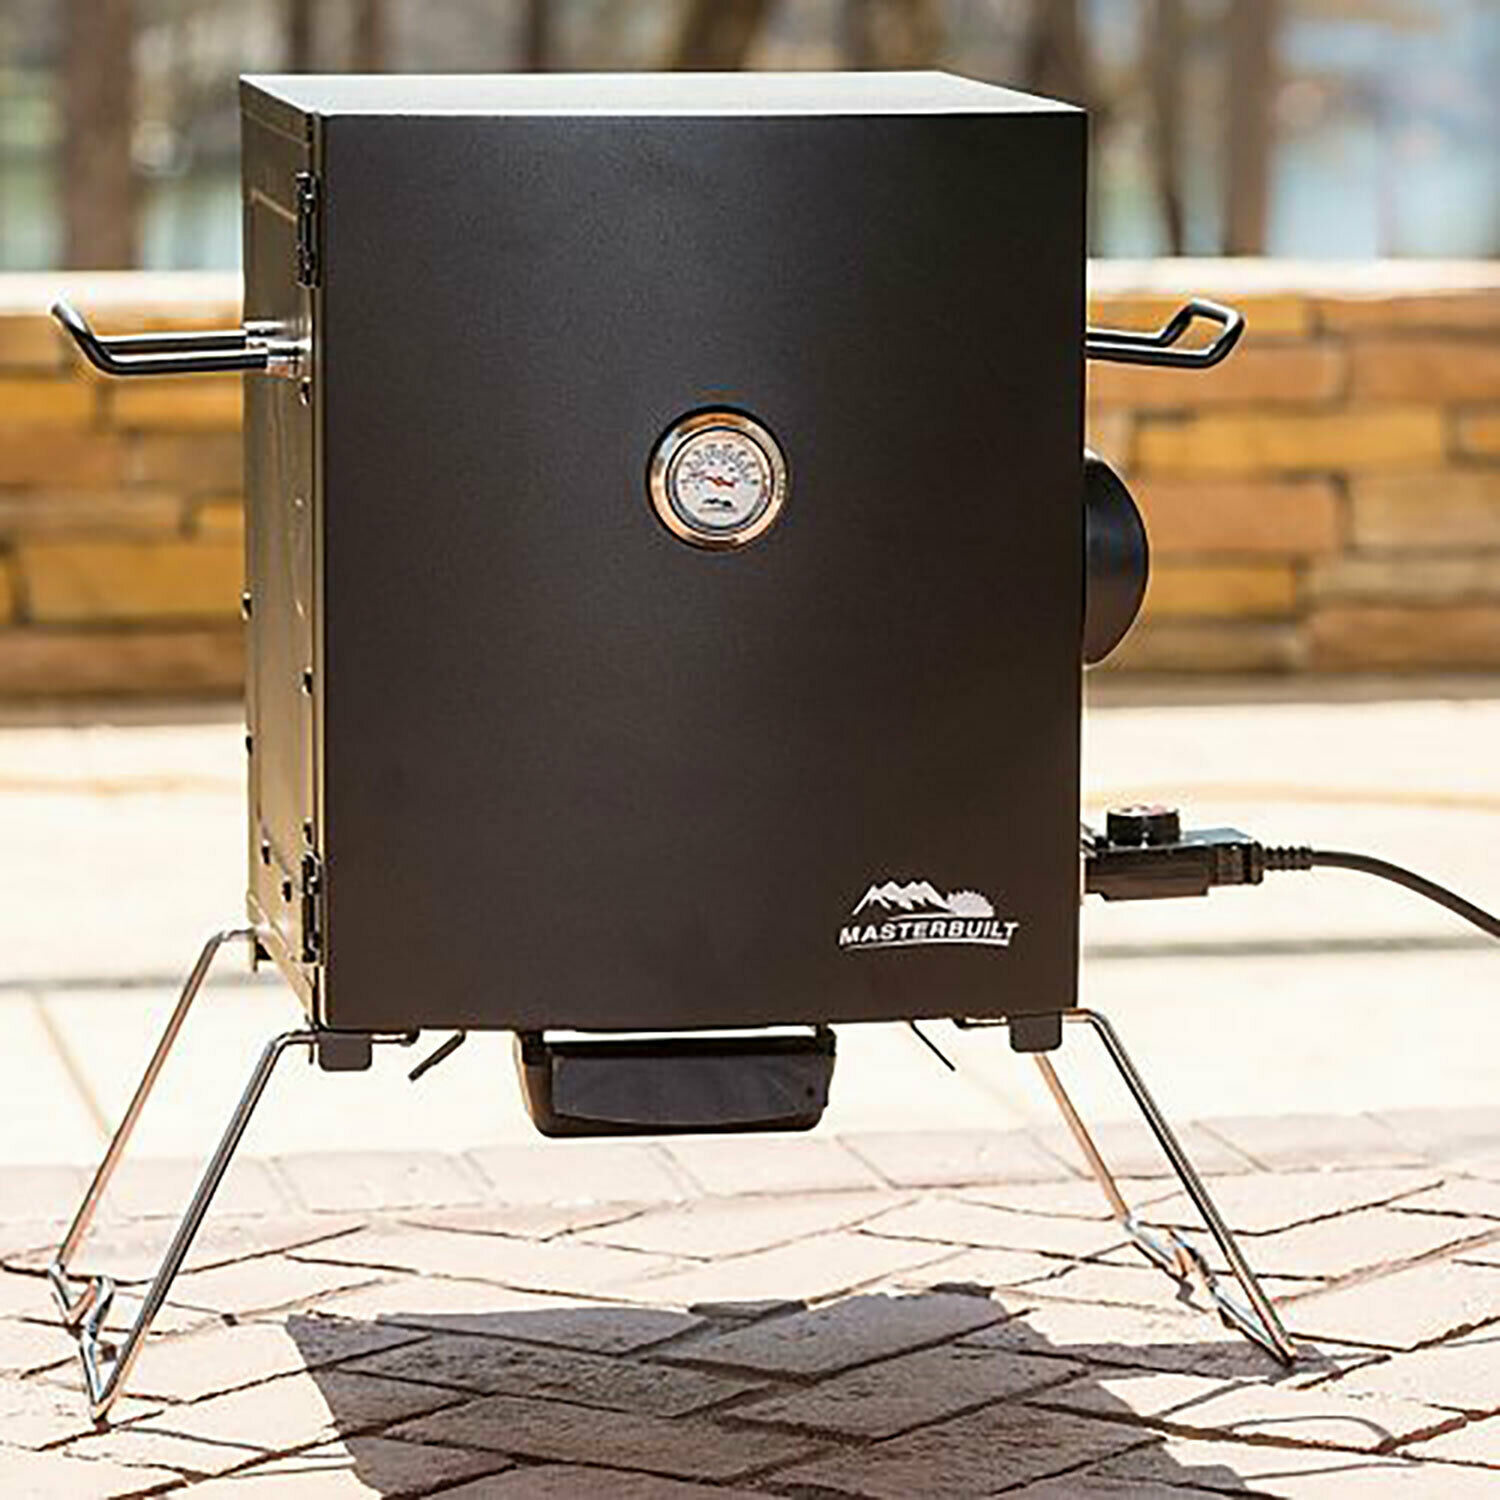 Masterbuilt Portable Electric Smoker - New In Original Box